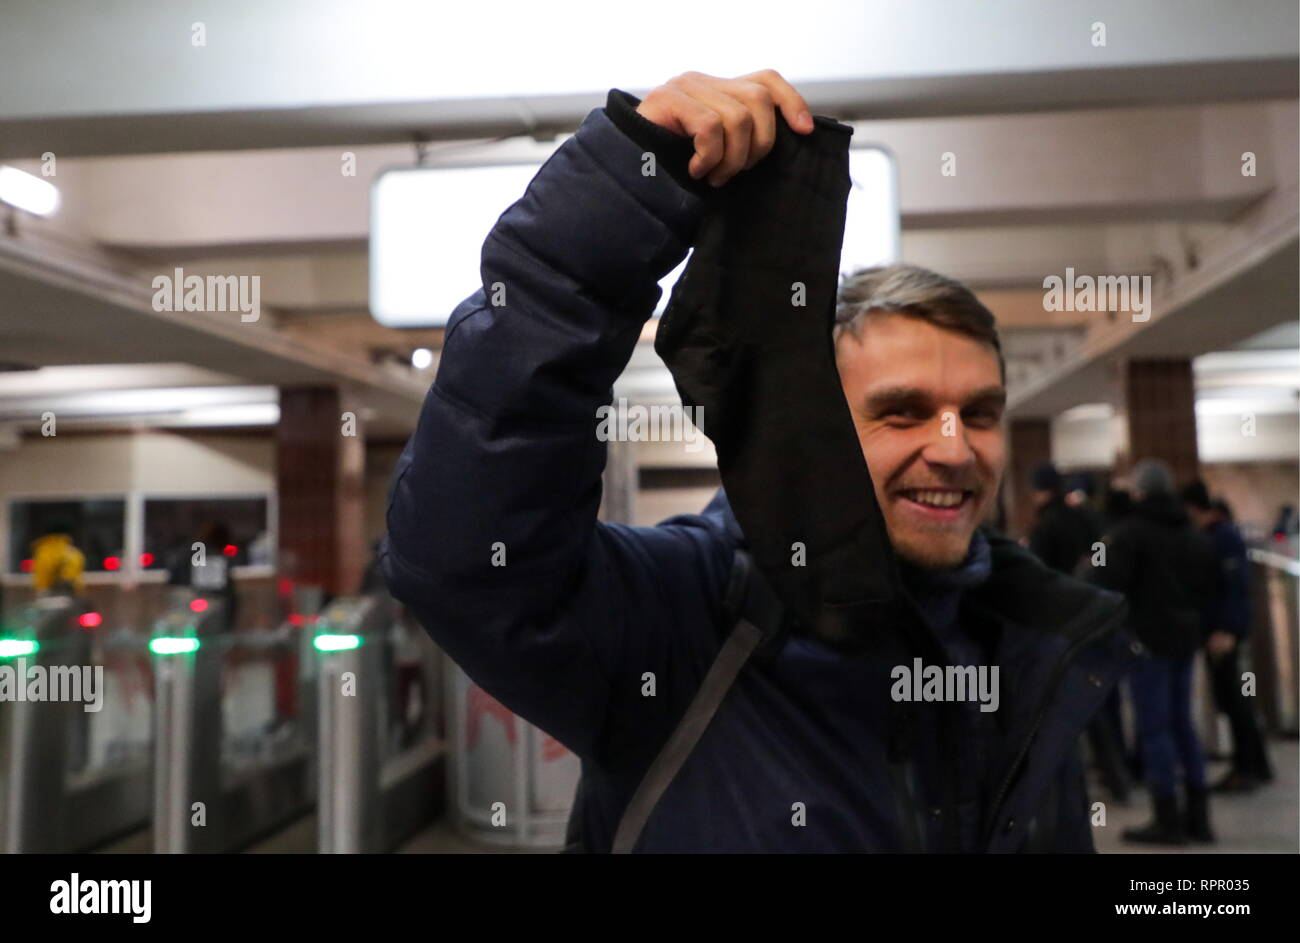 Moscow, Russia. 23rd Feb, 2019. A man shows a pair of socks given to him at the Komsomolskaya station of the Moscow Metro on Defender of the Fatherland Day. Vyacheslav Prokofyev/TASS Credit: ITAR-TASS News Agency/Alamy Live News Stock Photo